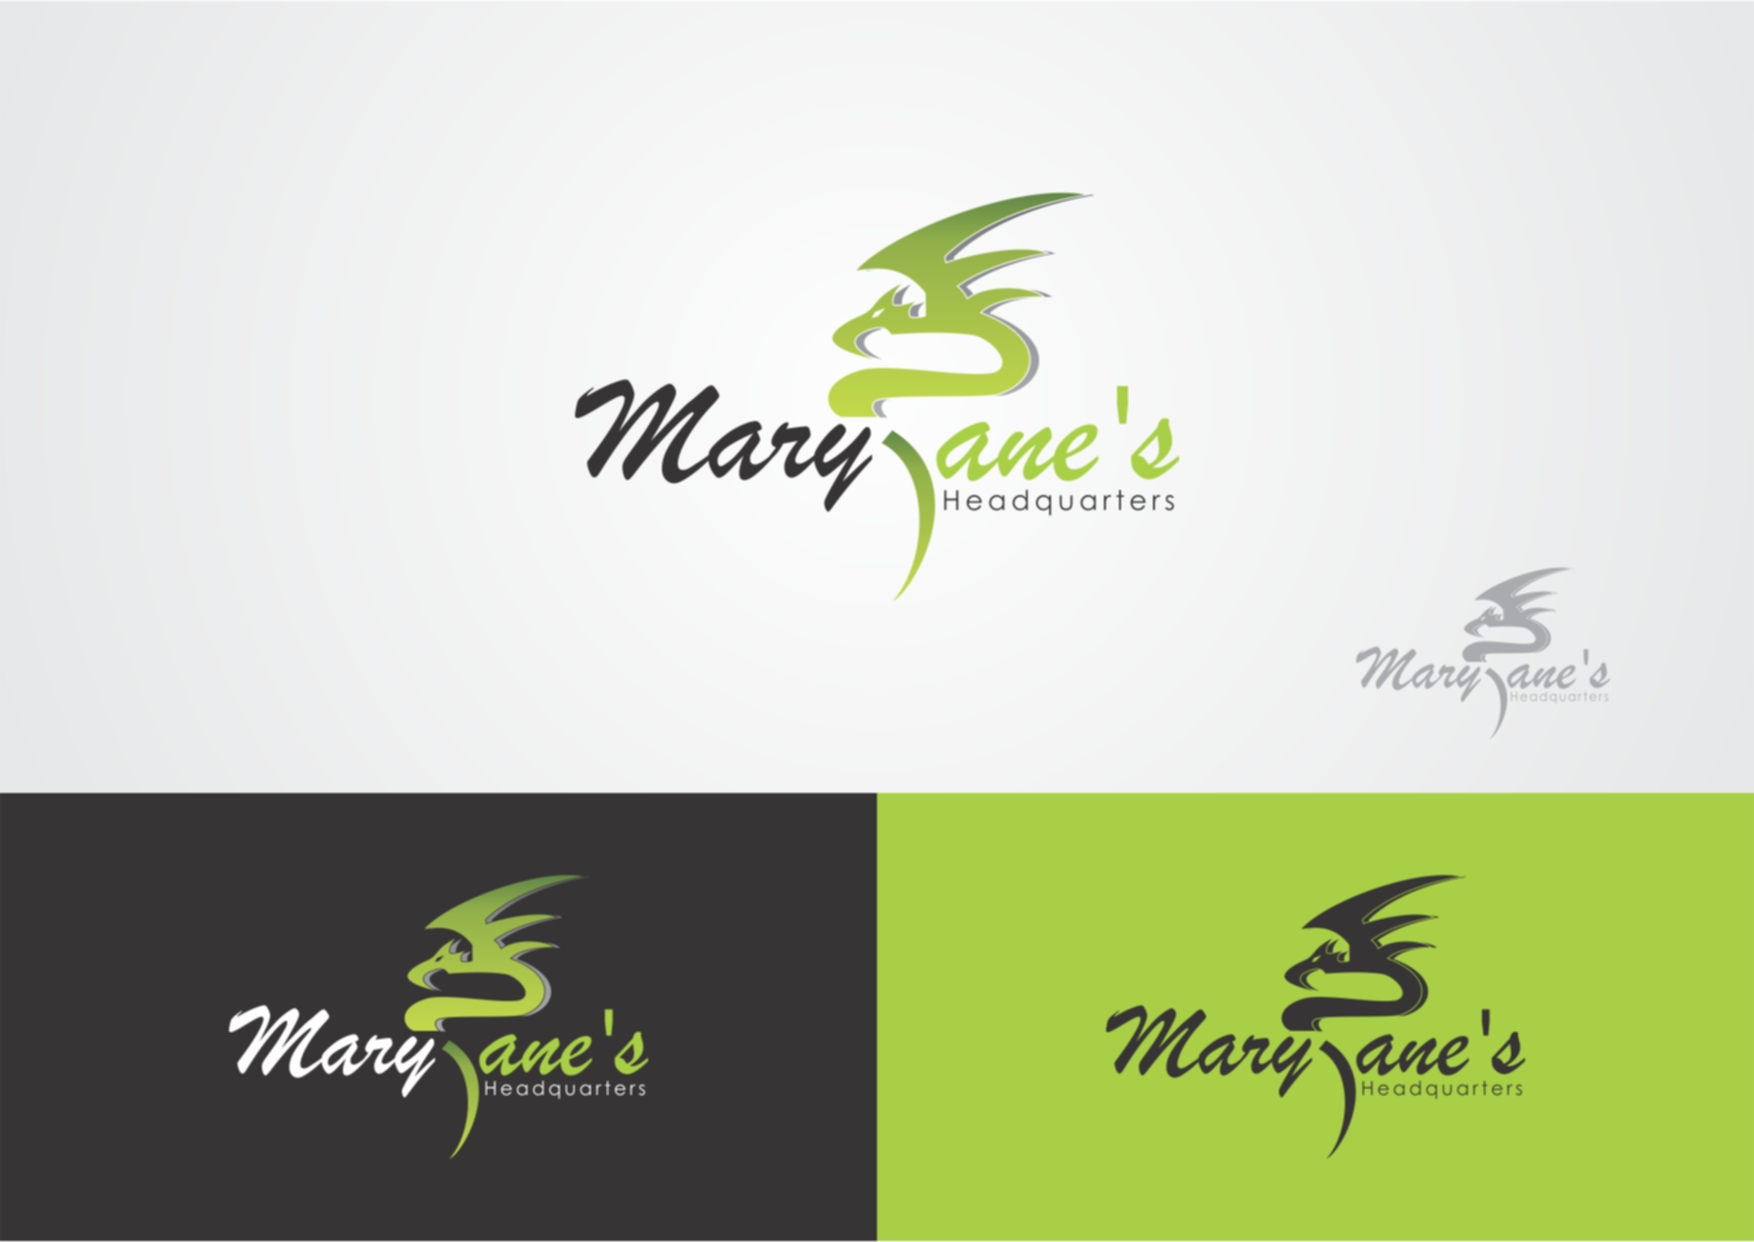 Logo Design by Private User - Entry No. 31 in the Logo Design Contest Mary Jane's Headquarters Logo Design.